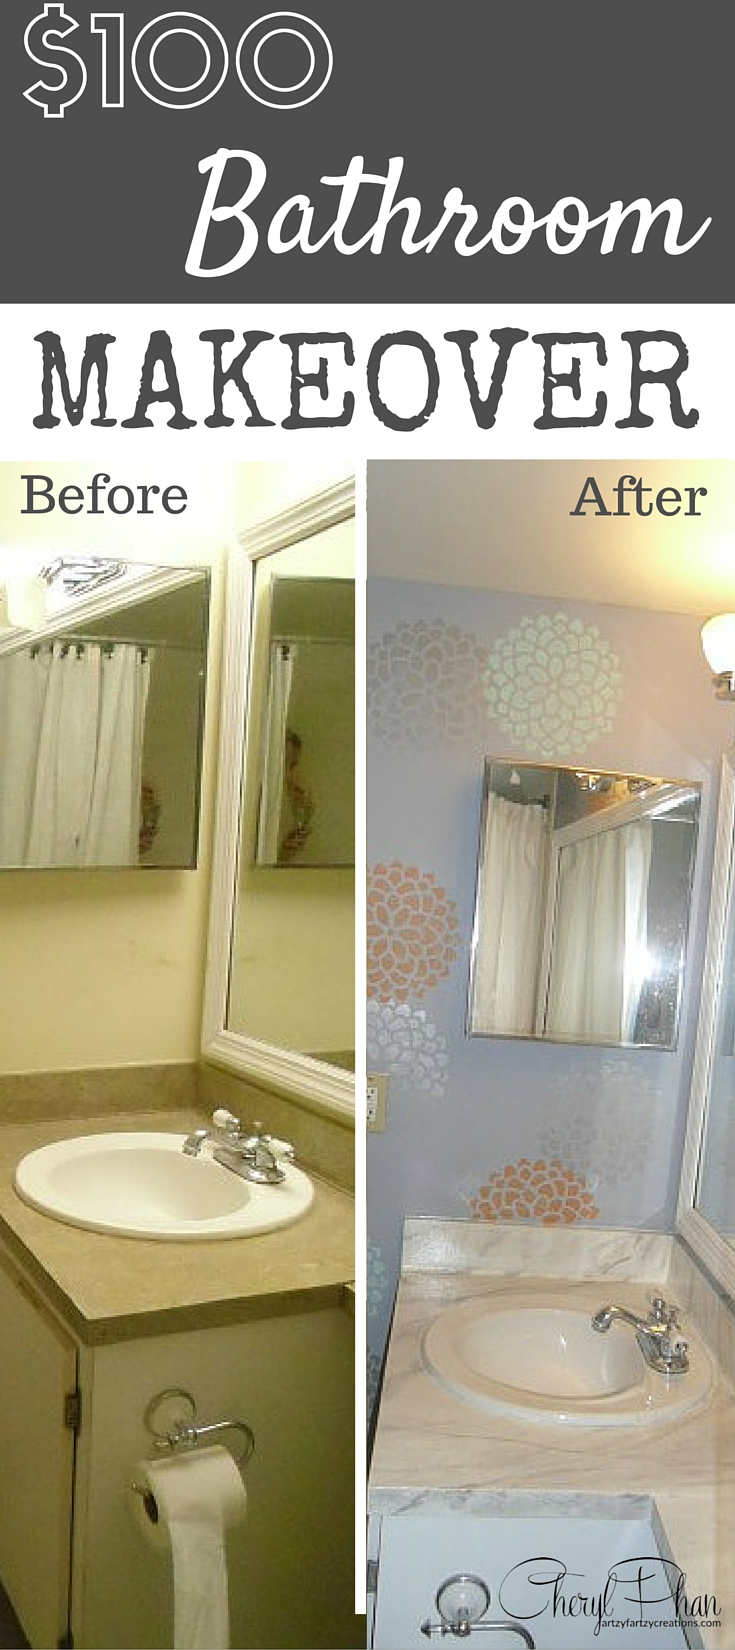 Pin It: $100 Bathroom Makeover